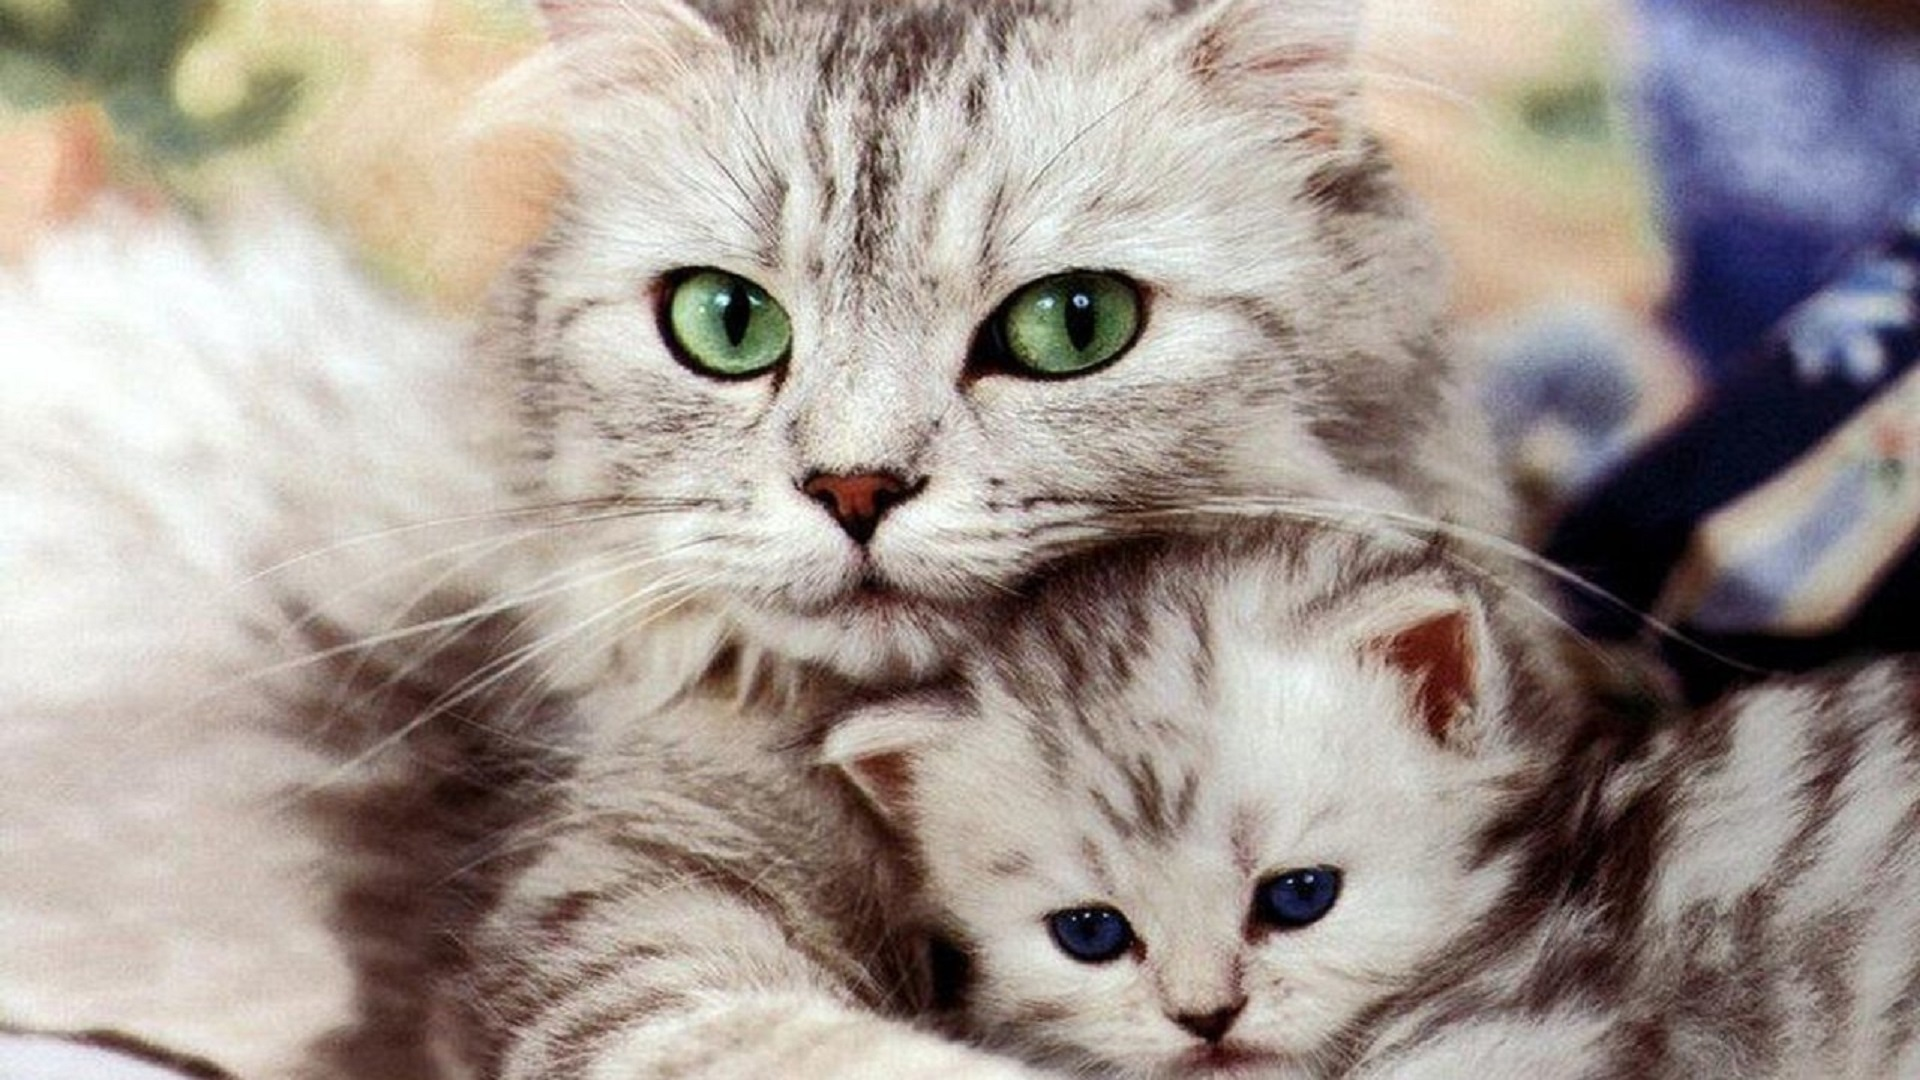 Beautiful Cat and Kitten cats free hd wallpapers HD Wallpaper